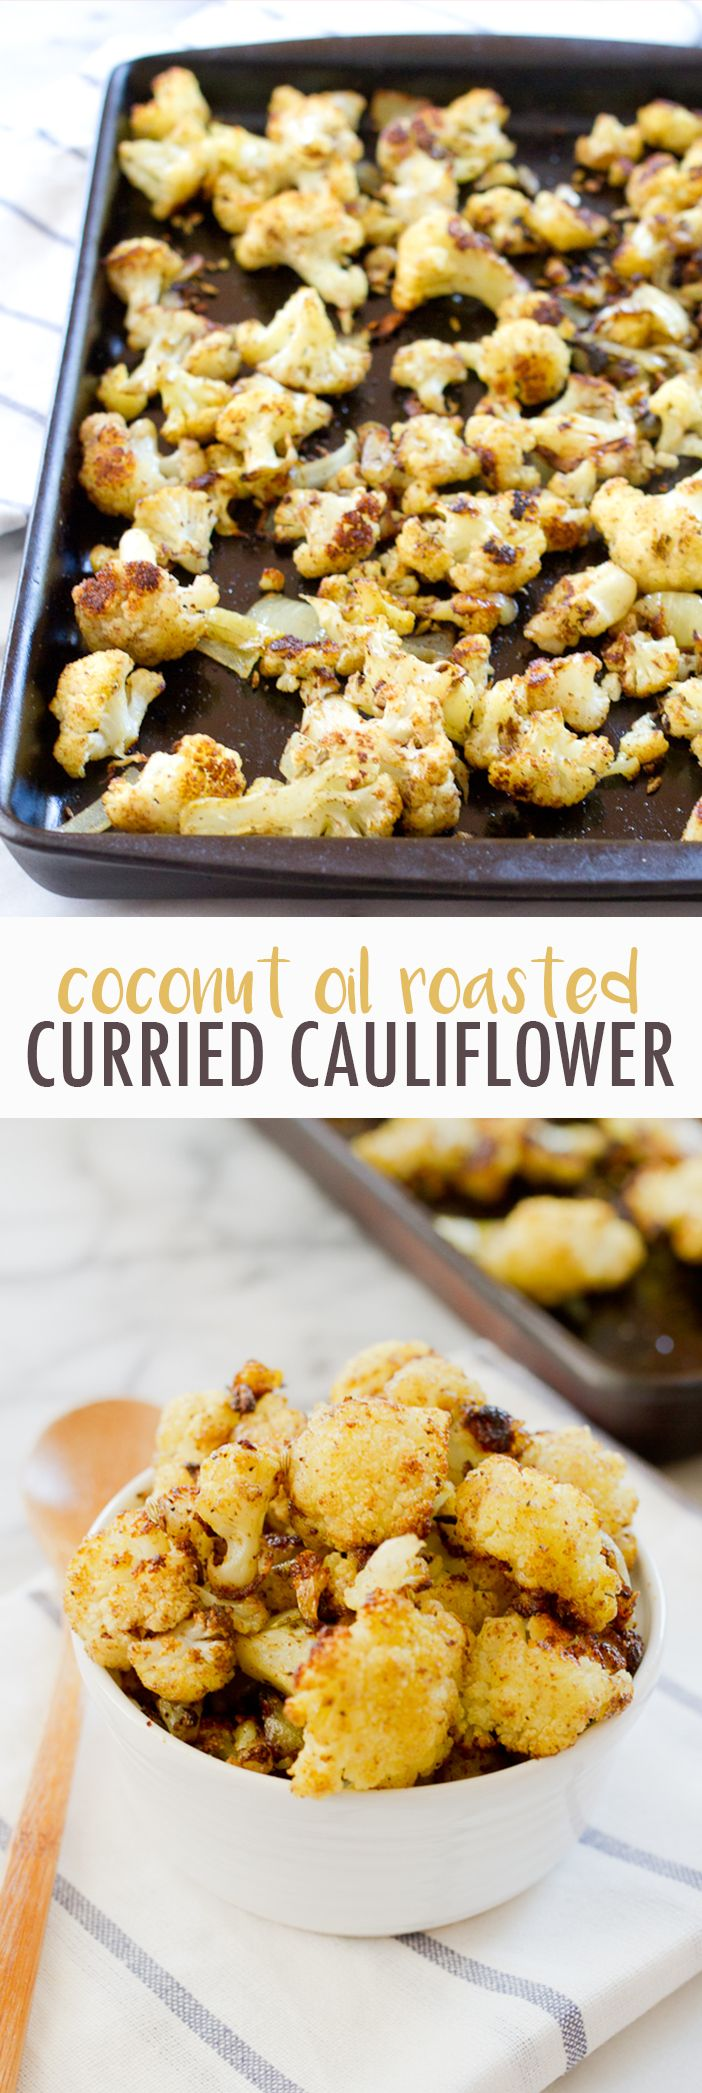 Cauliflower roasted to perfection with coconut oil, curry powder, garam masala and fennel seeds. It's easy to whip up, amazingly flavorful and one of my all-time favorite vegetable side dishes.